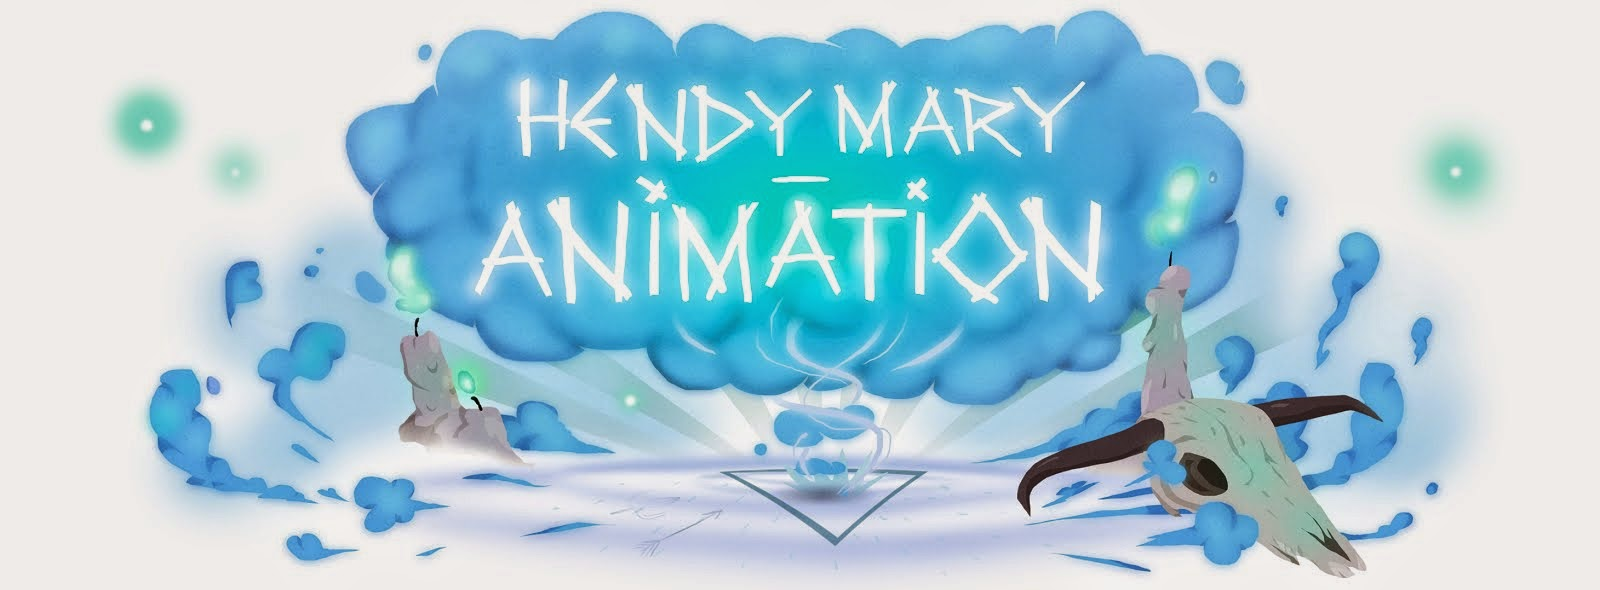 My animation tumblr